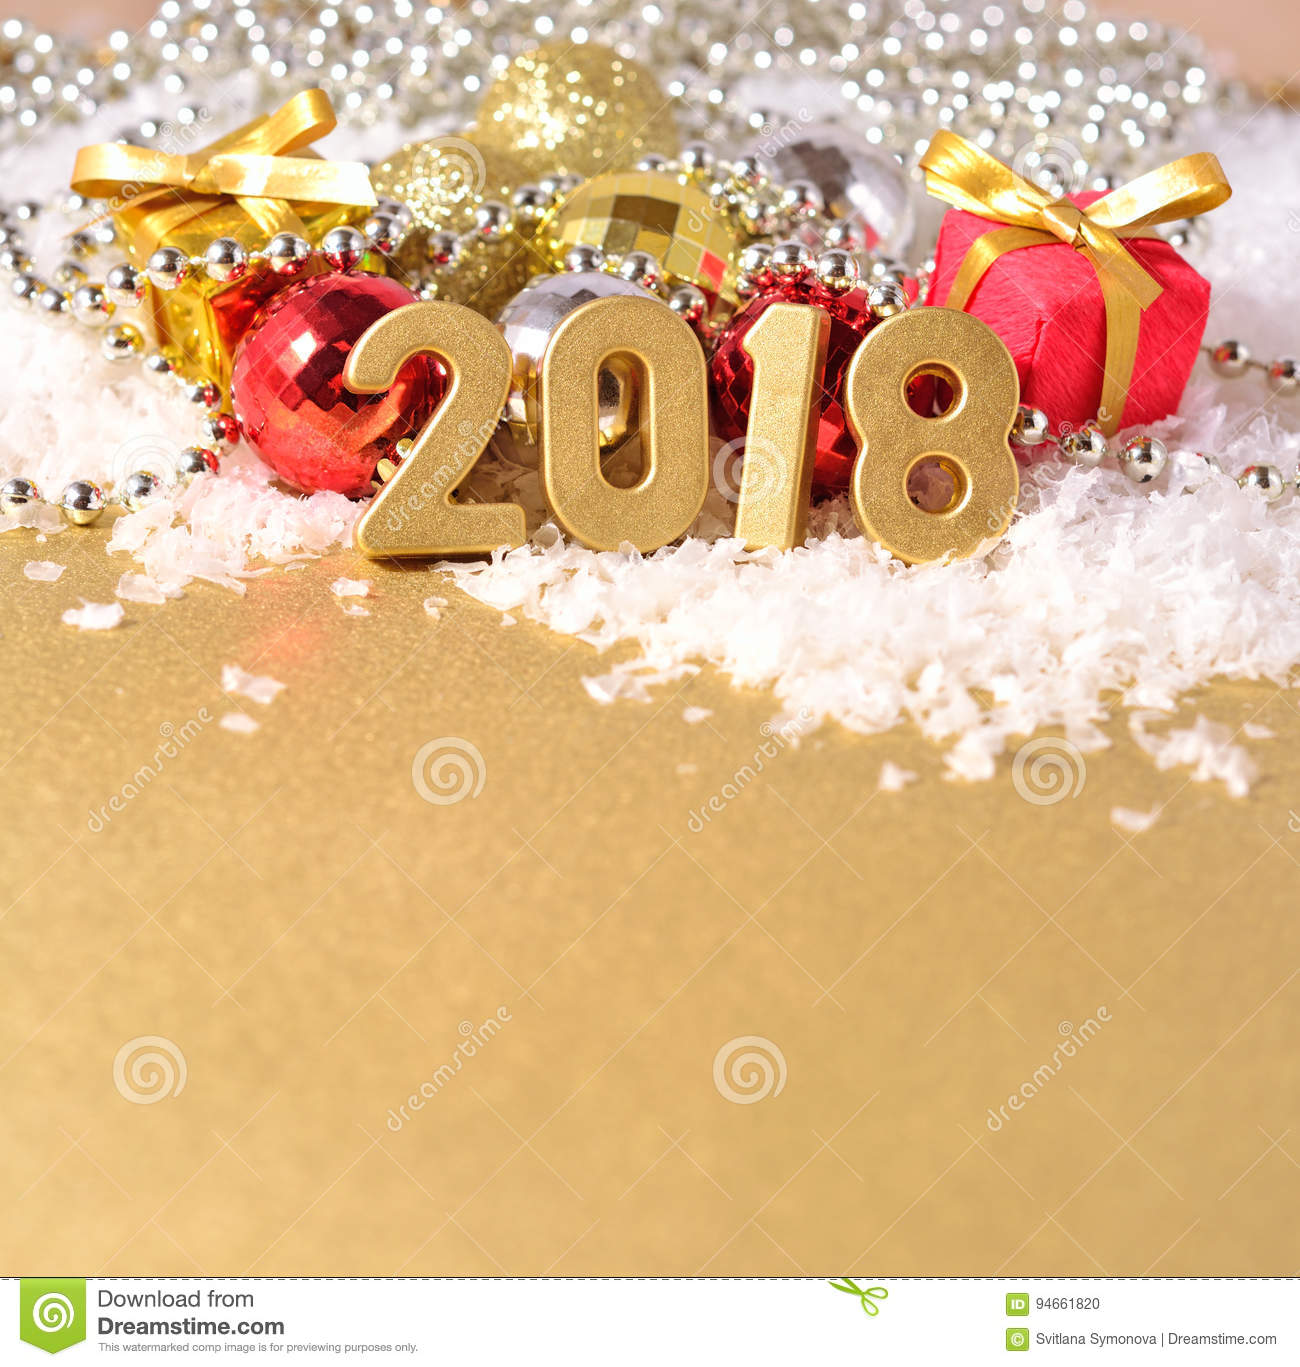 2018 Year Golden Figures And Christmas Decorations Stock Photo ...